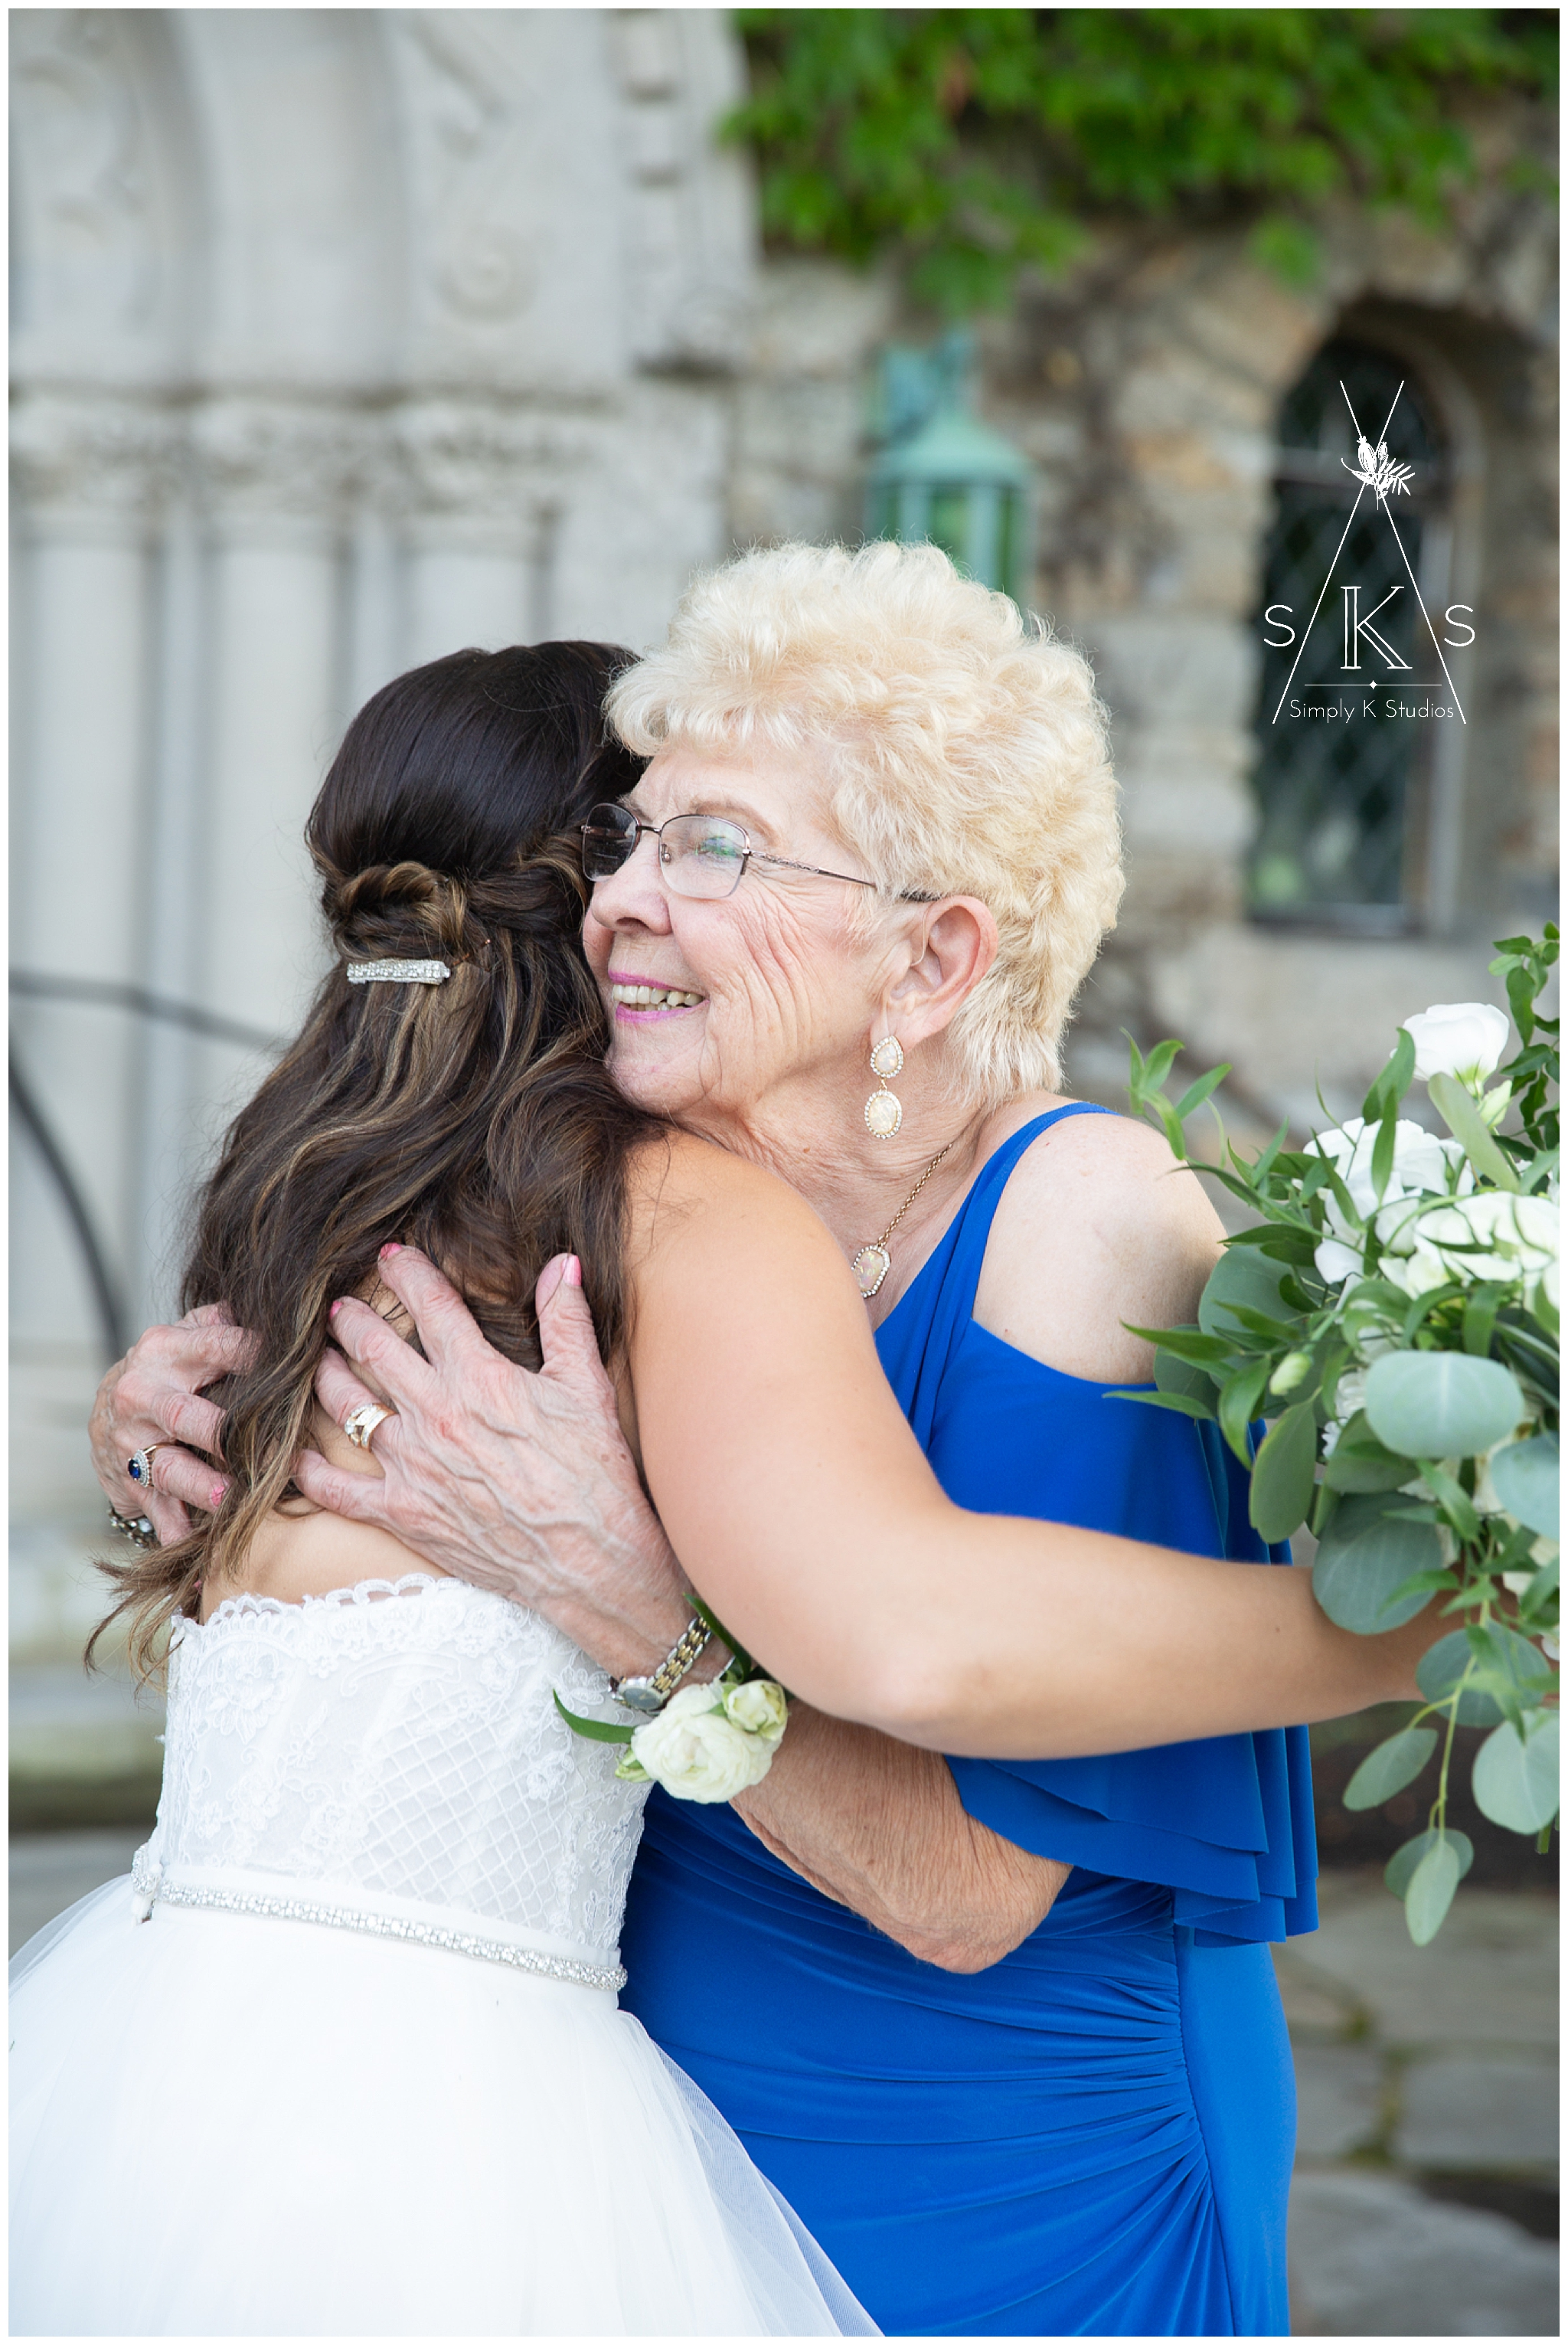 Cute grandma at her granddaughter's wedding